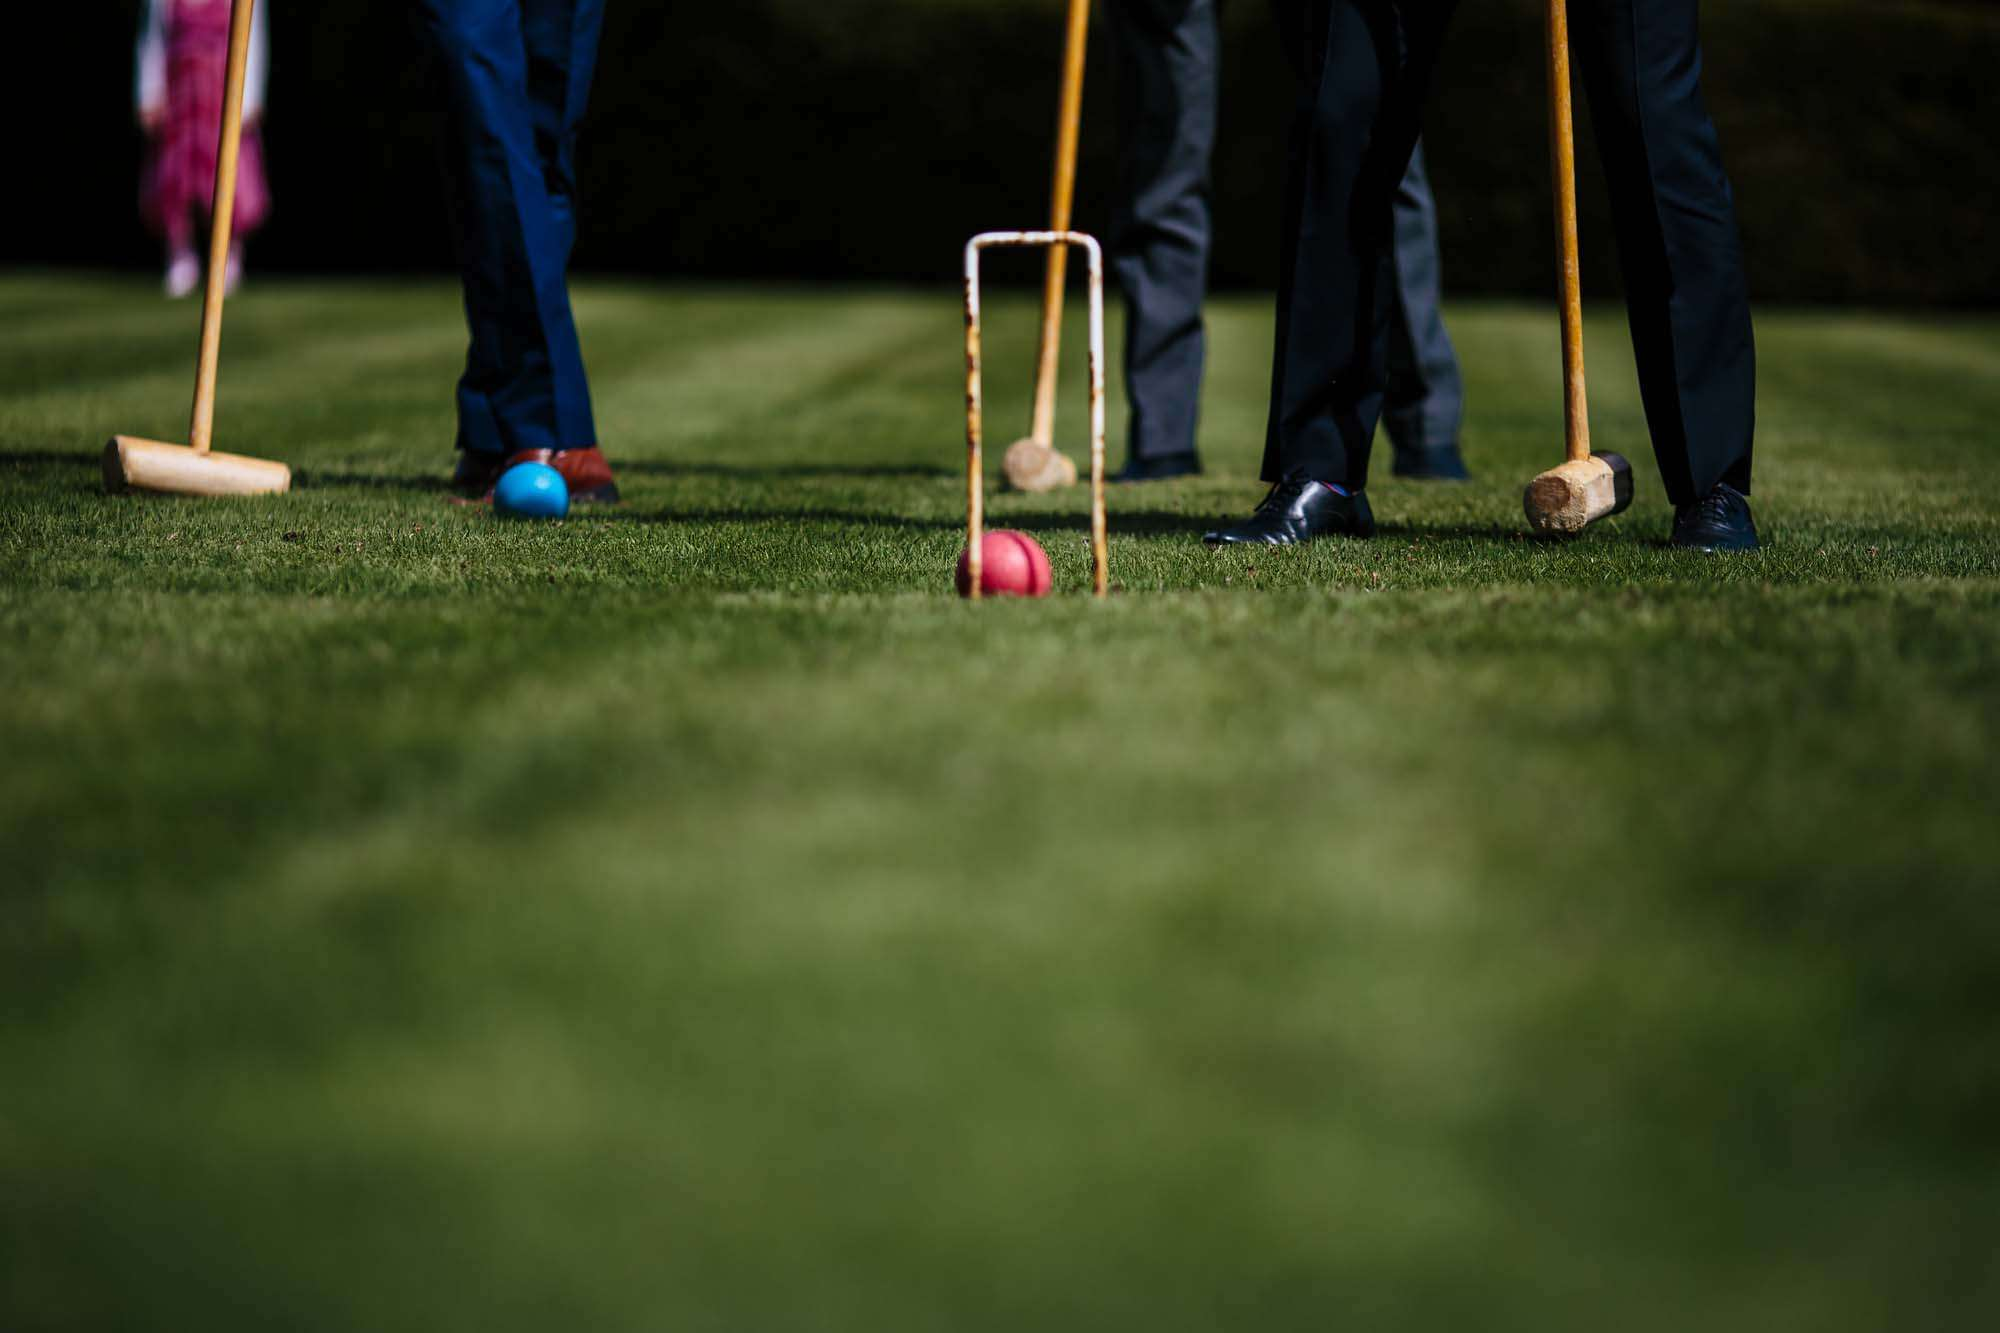 Croquet at a wedding in the sunshine